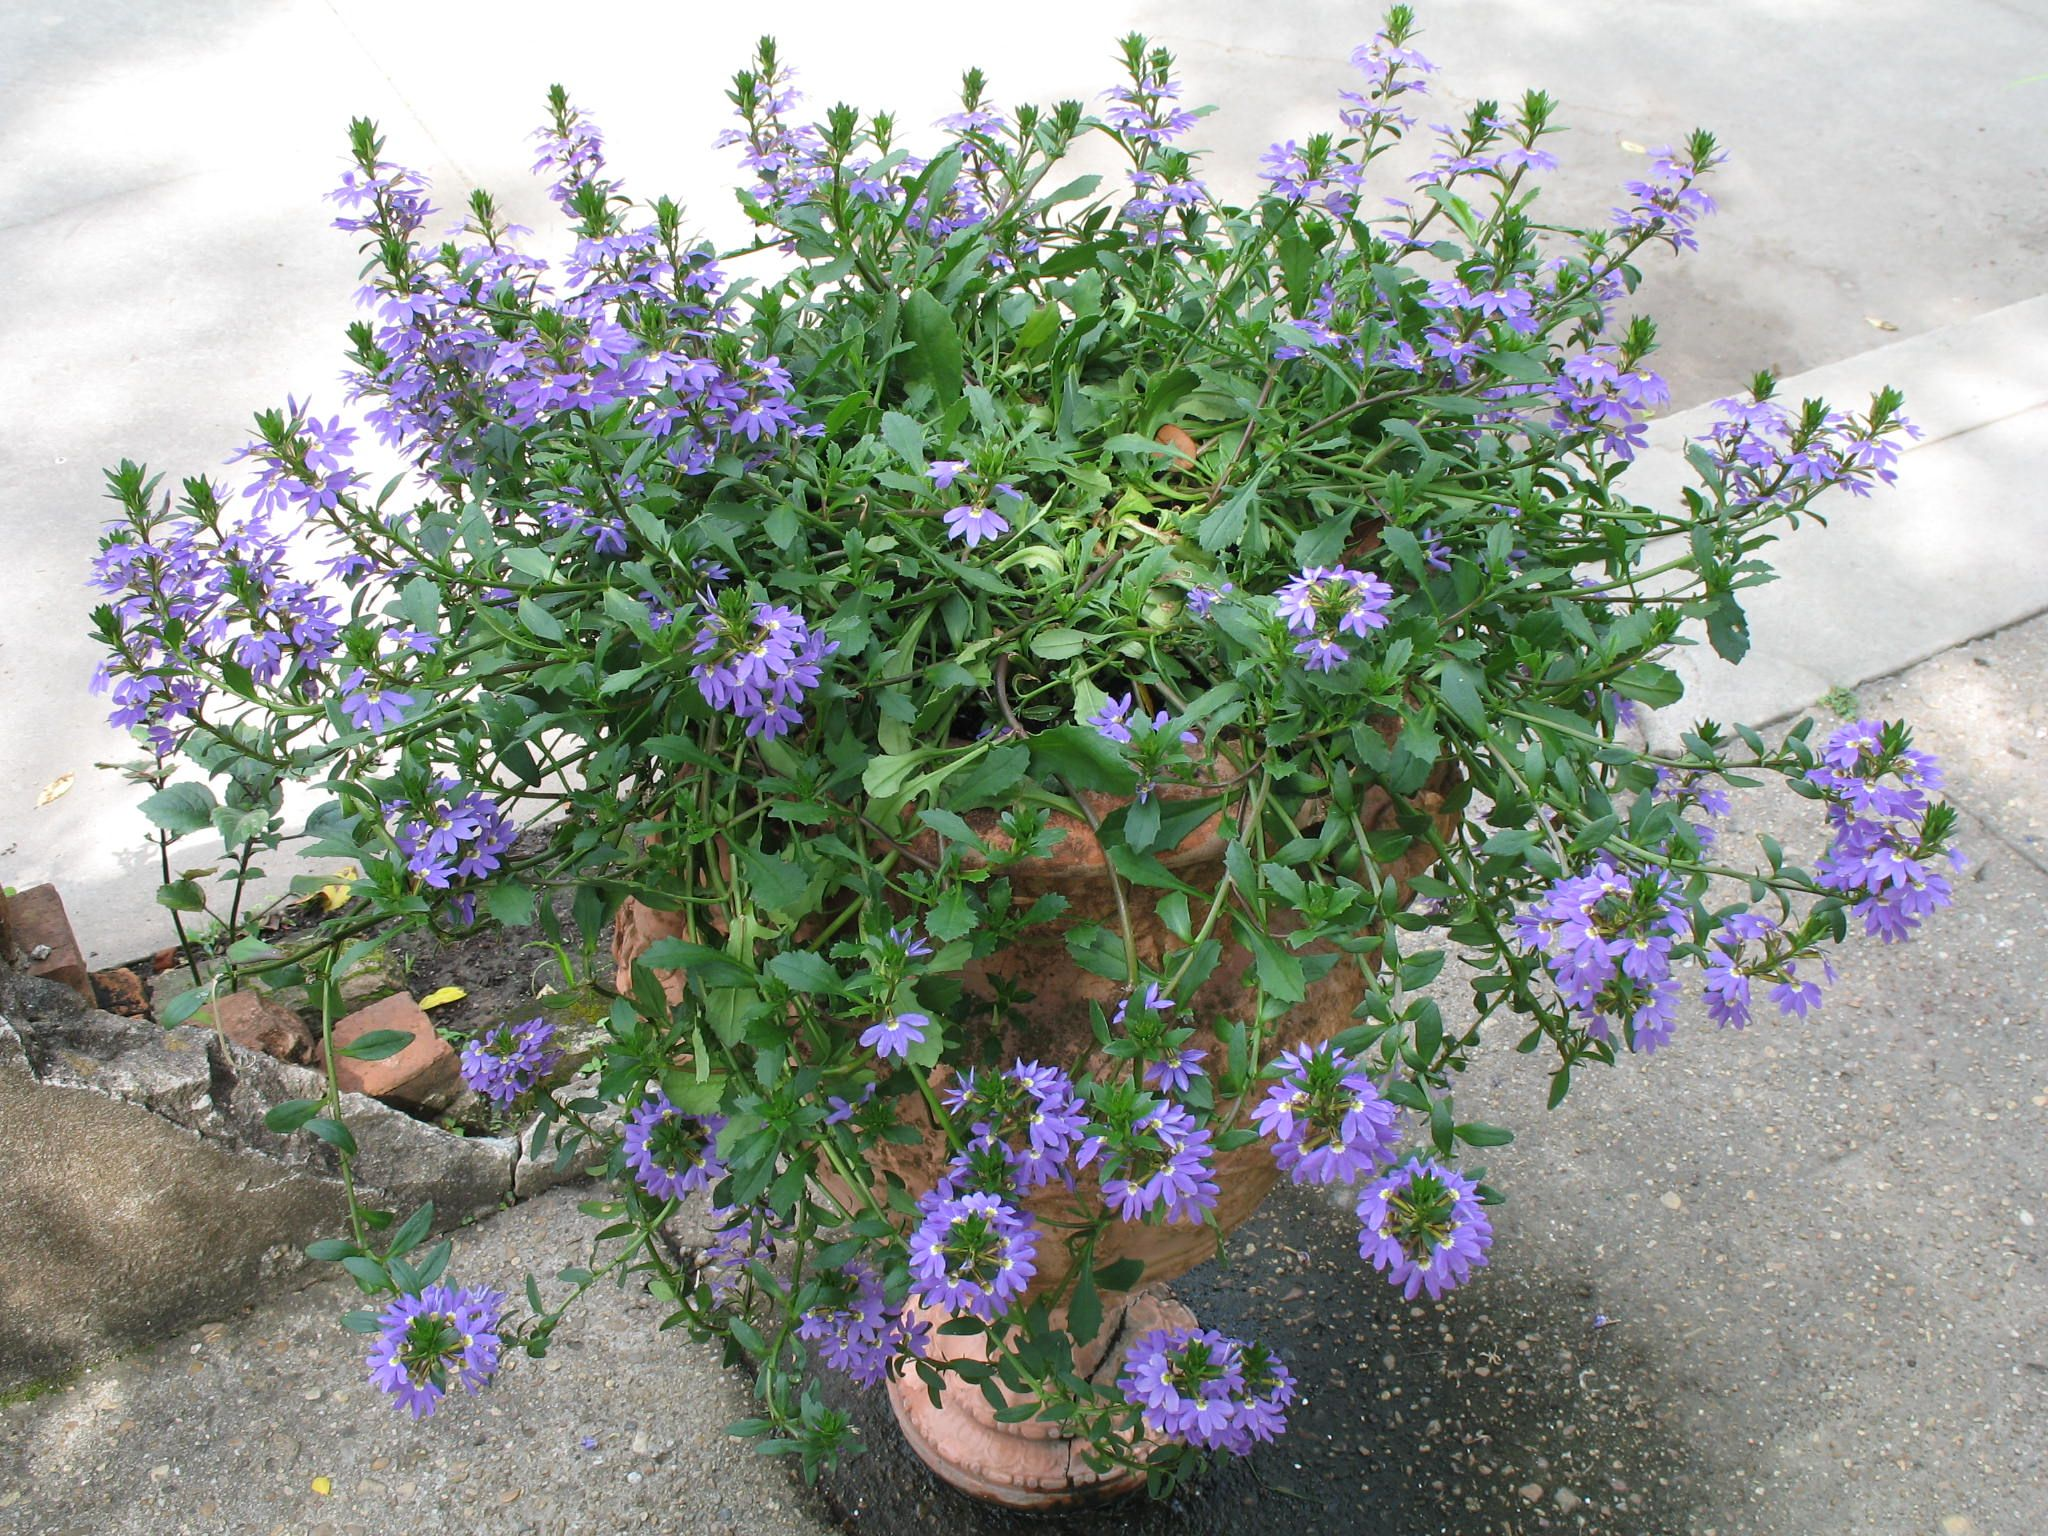 Fan flower scaevola aemula 10 15 tall blue fan is a good this is a excellent selection of the fan flower it produces draping foliage covered with blue flowers this perennial is well adapted to well drained soil mightylinksfo Image collections